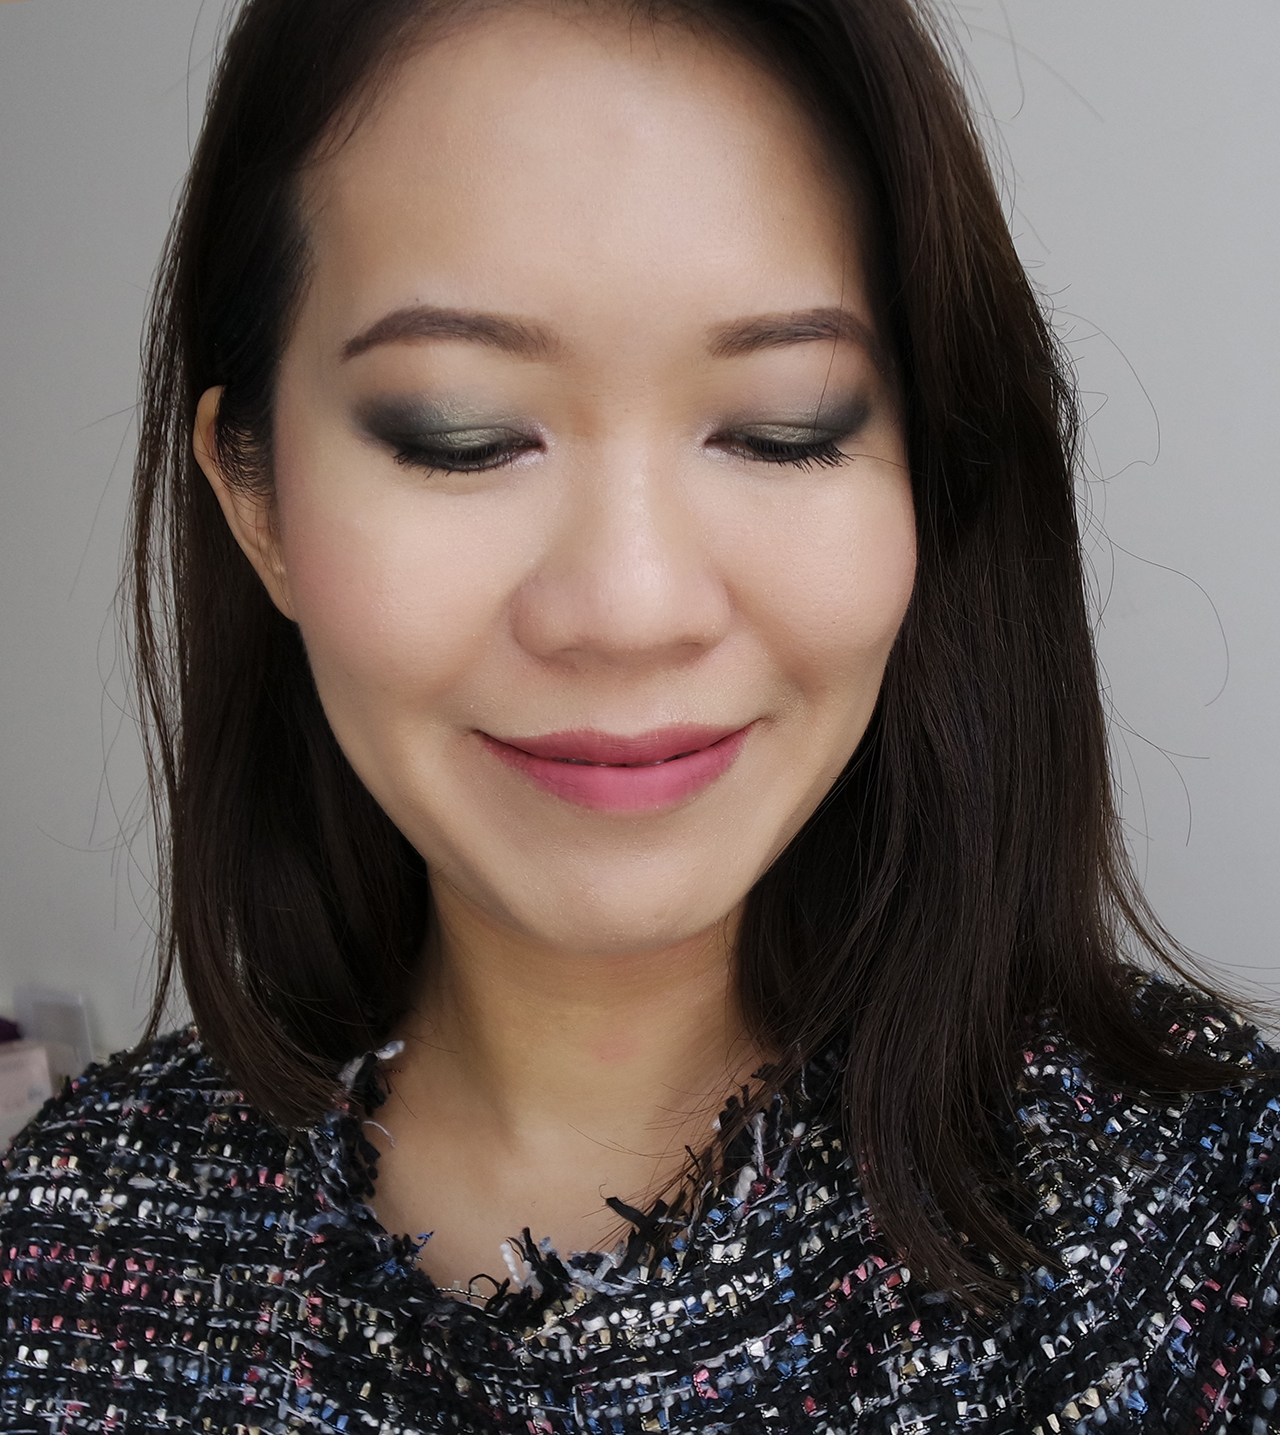 Zoeva Eclectic Eyes makeup look